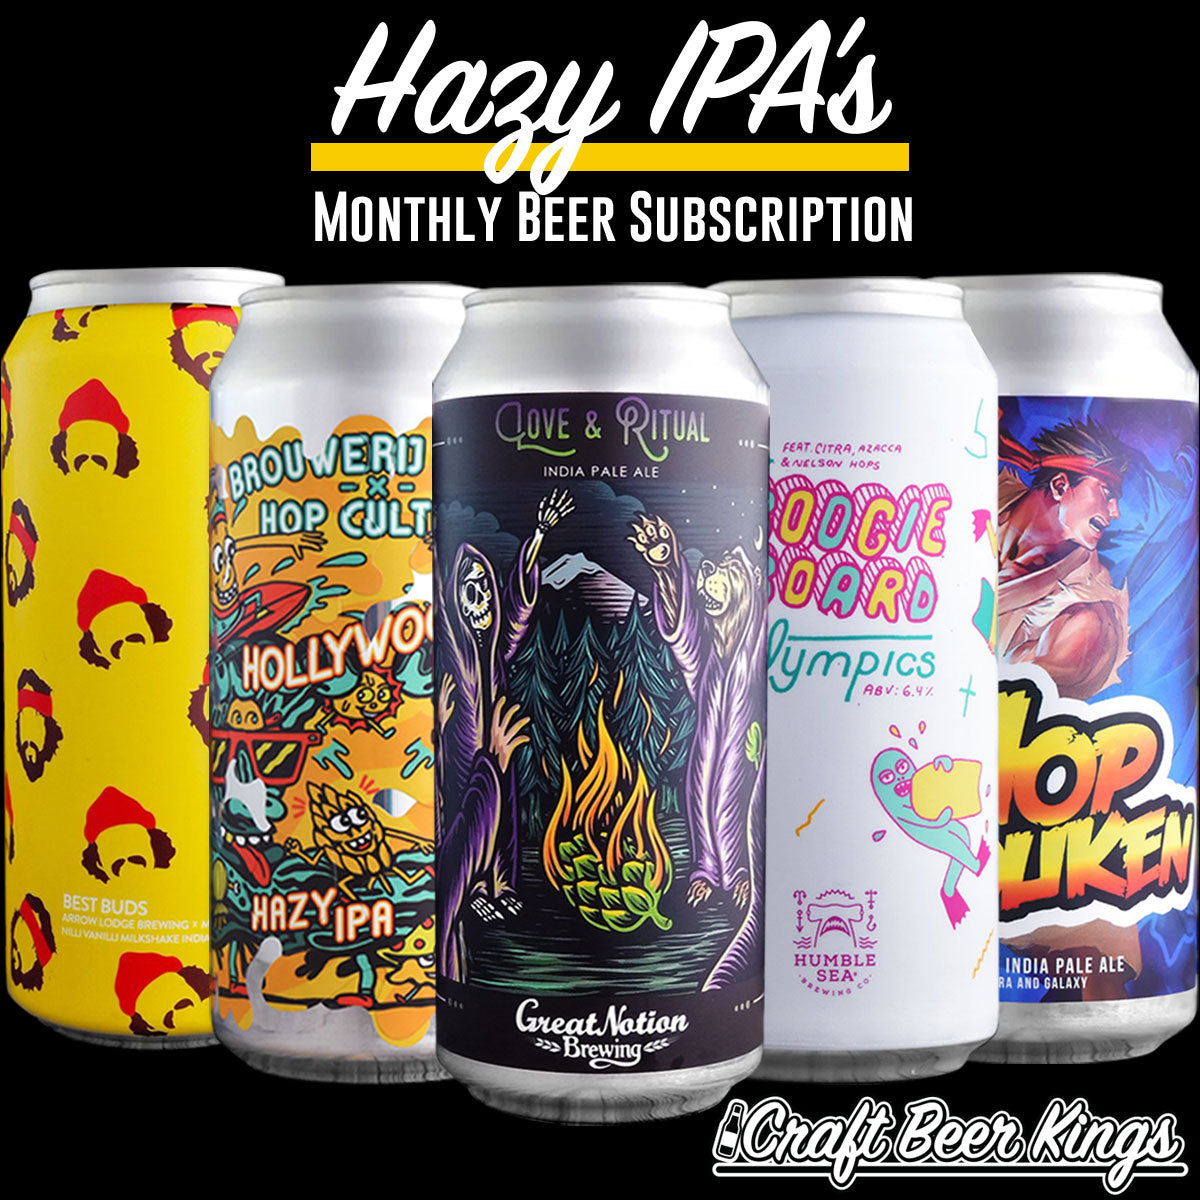 Hazy Subscription Box Craft Beer Kings